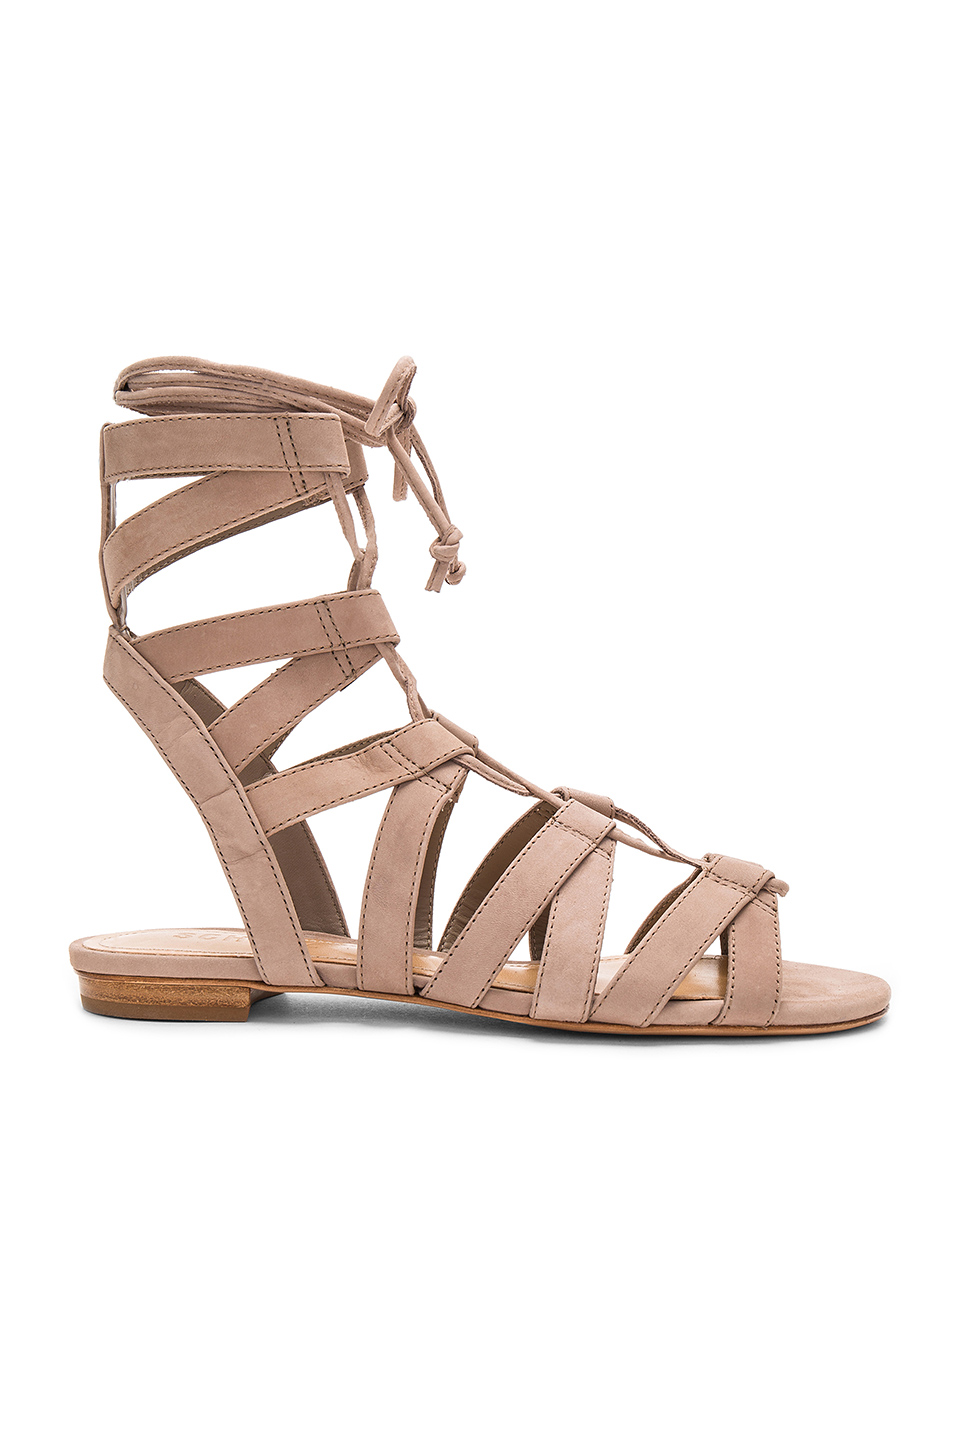 Schutz Berlina Sandal in Neutral